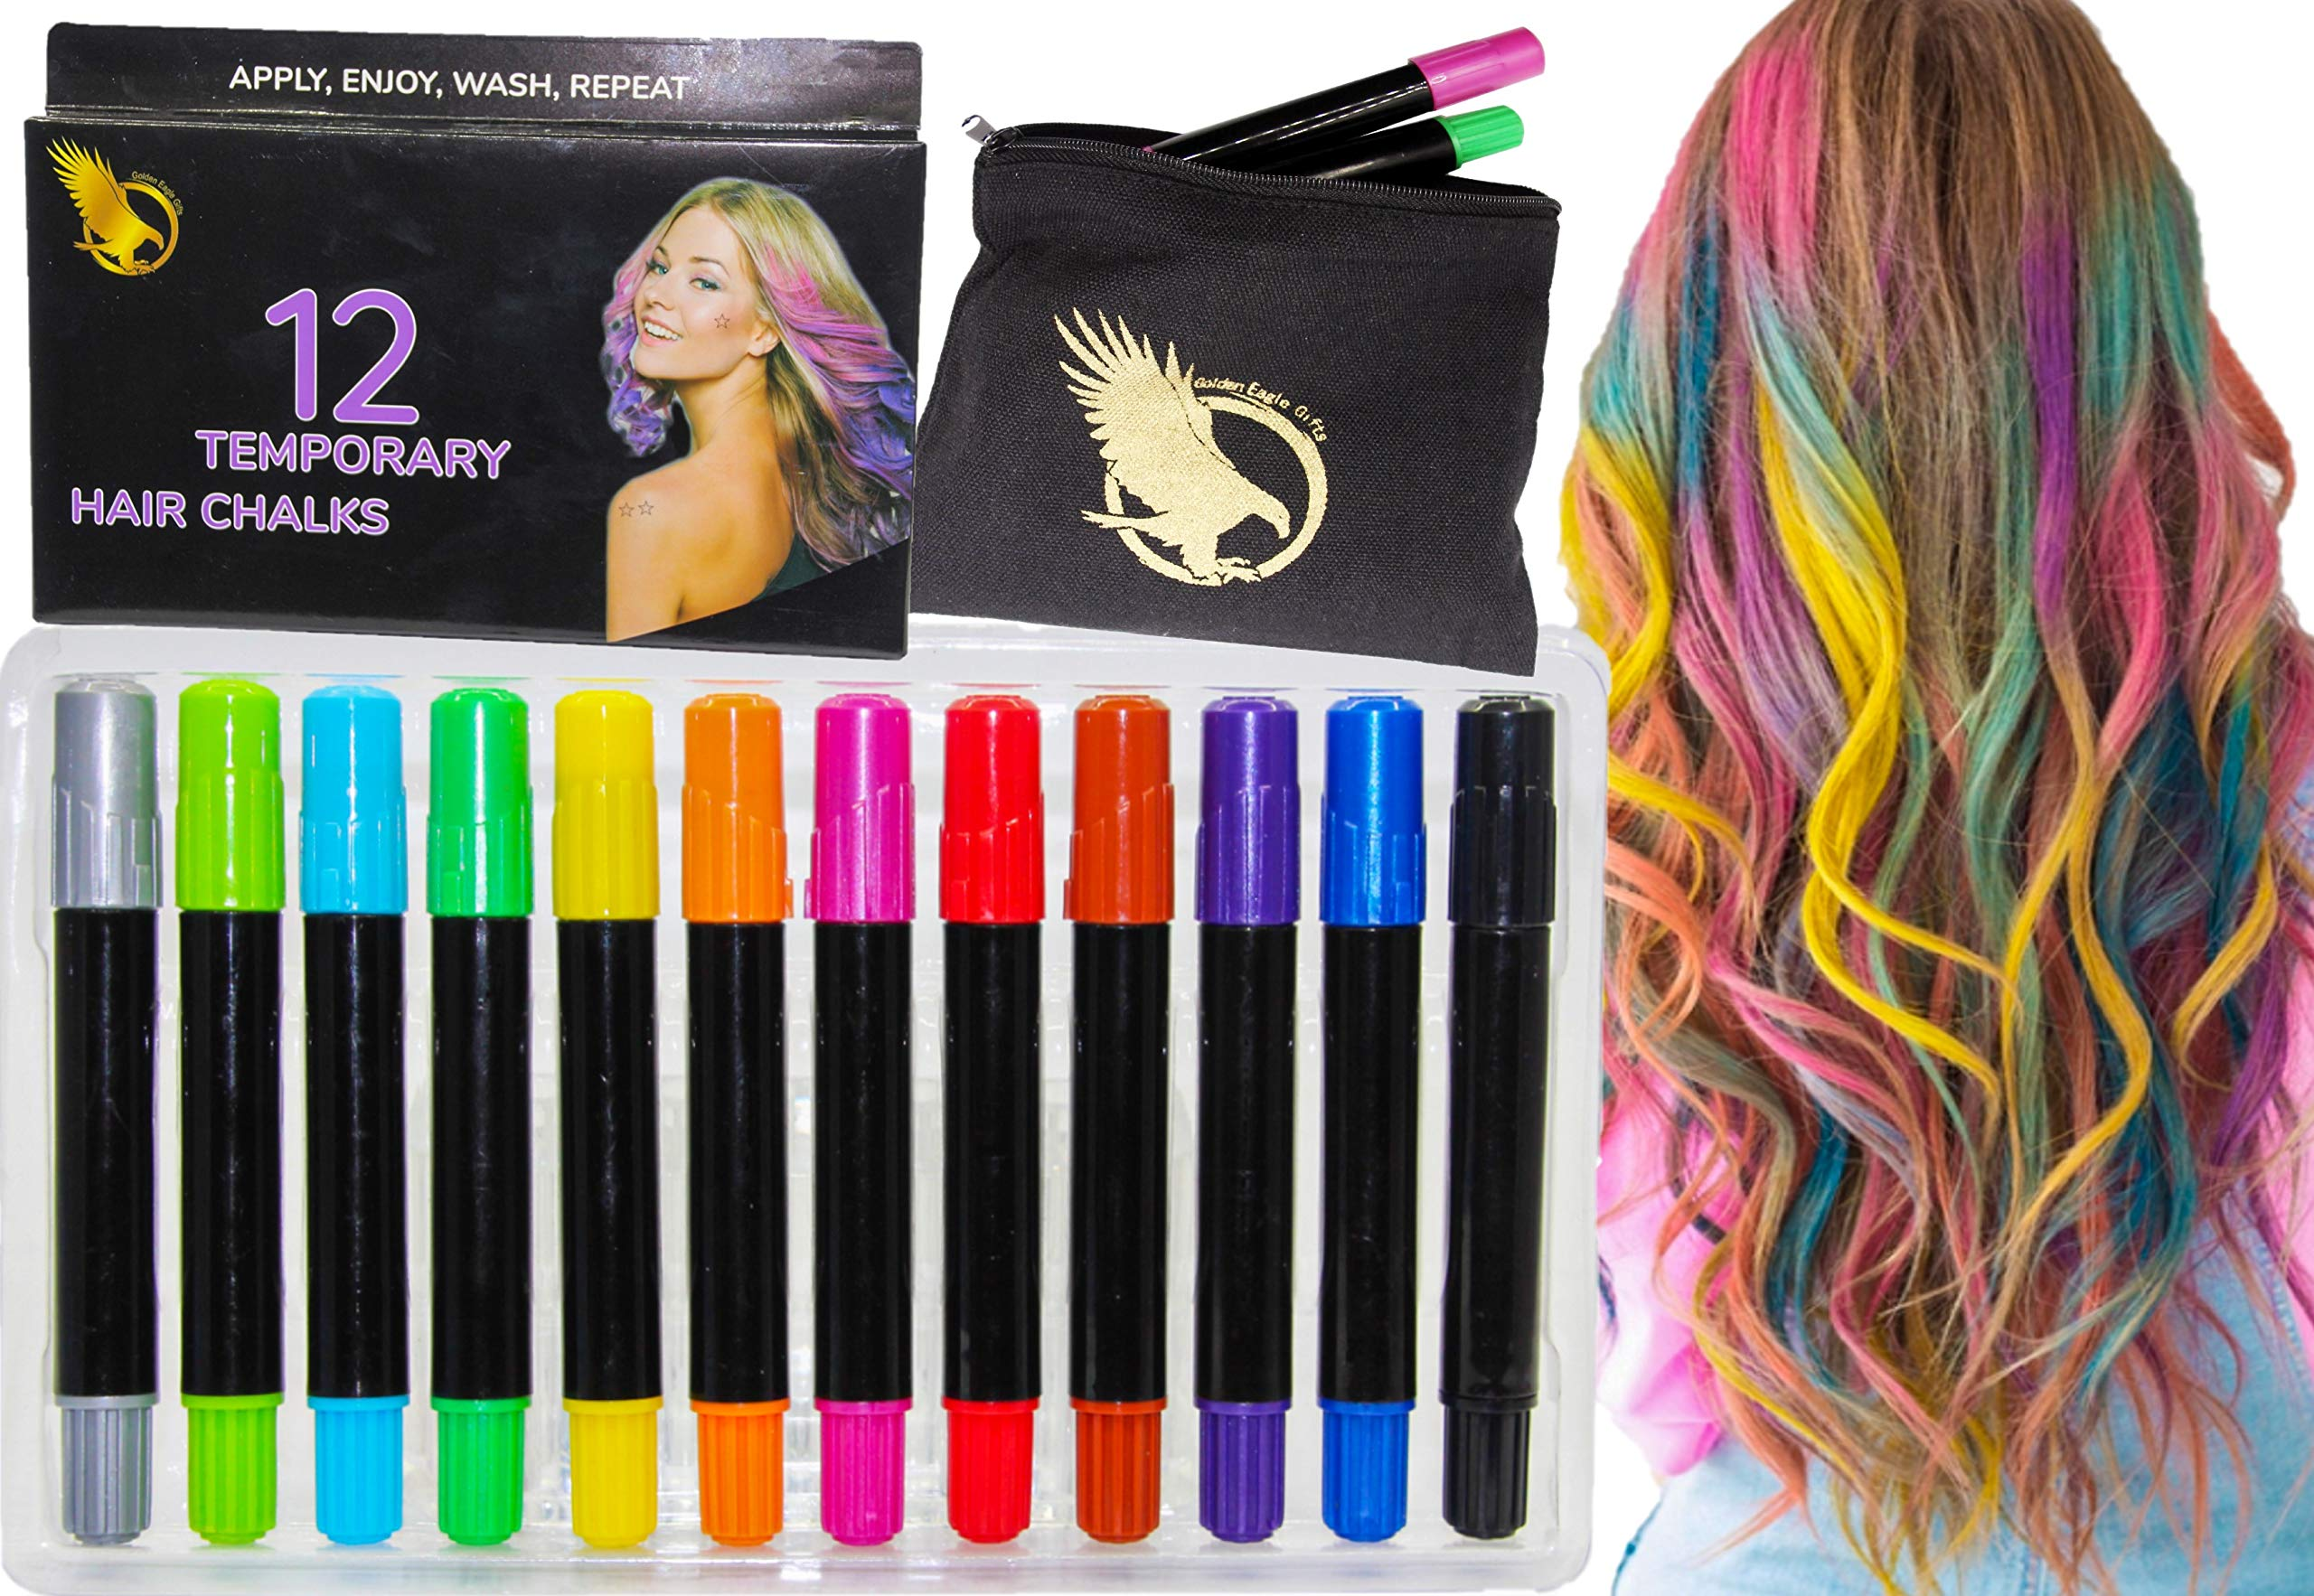 Hair Chalk Pens, 12 Color temporary hair color, top package hair dye Hair Color, Safe For kids gifts teen for Party Cosplay Halloween Makeup, kid coloring, dye, salon colored, hairchalk kits, with bag by Golden Eagle Gifts